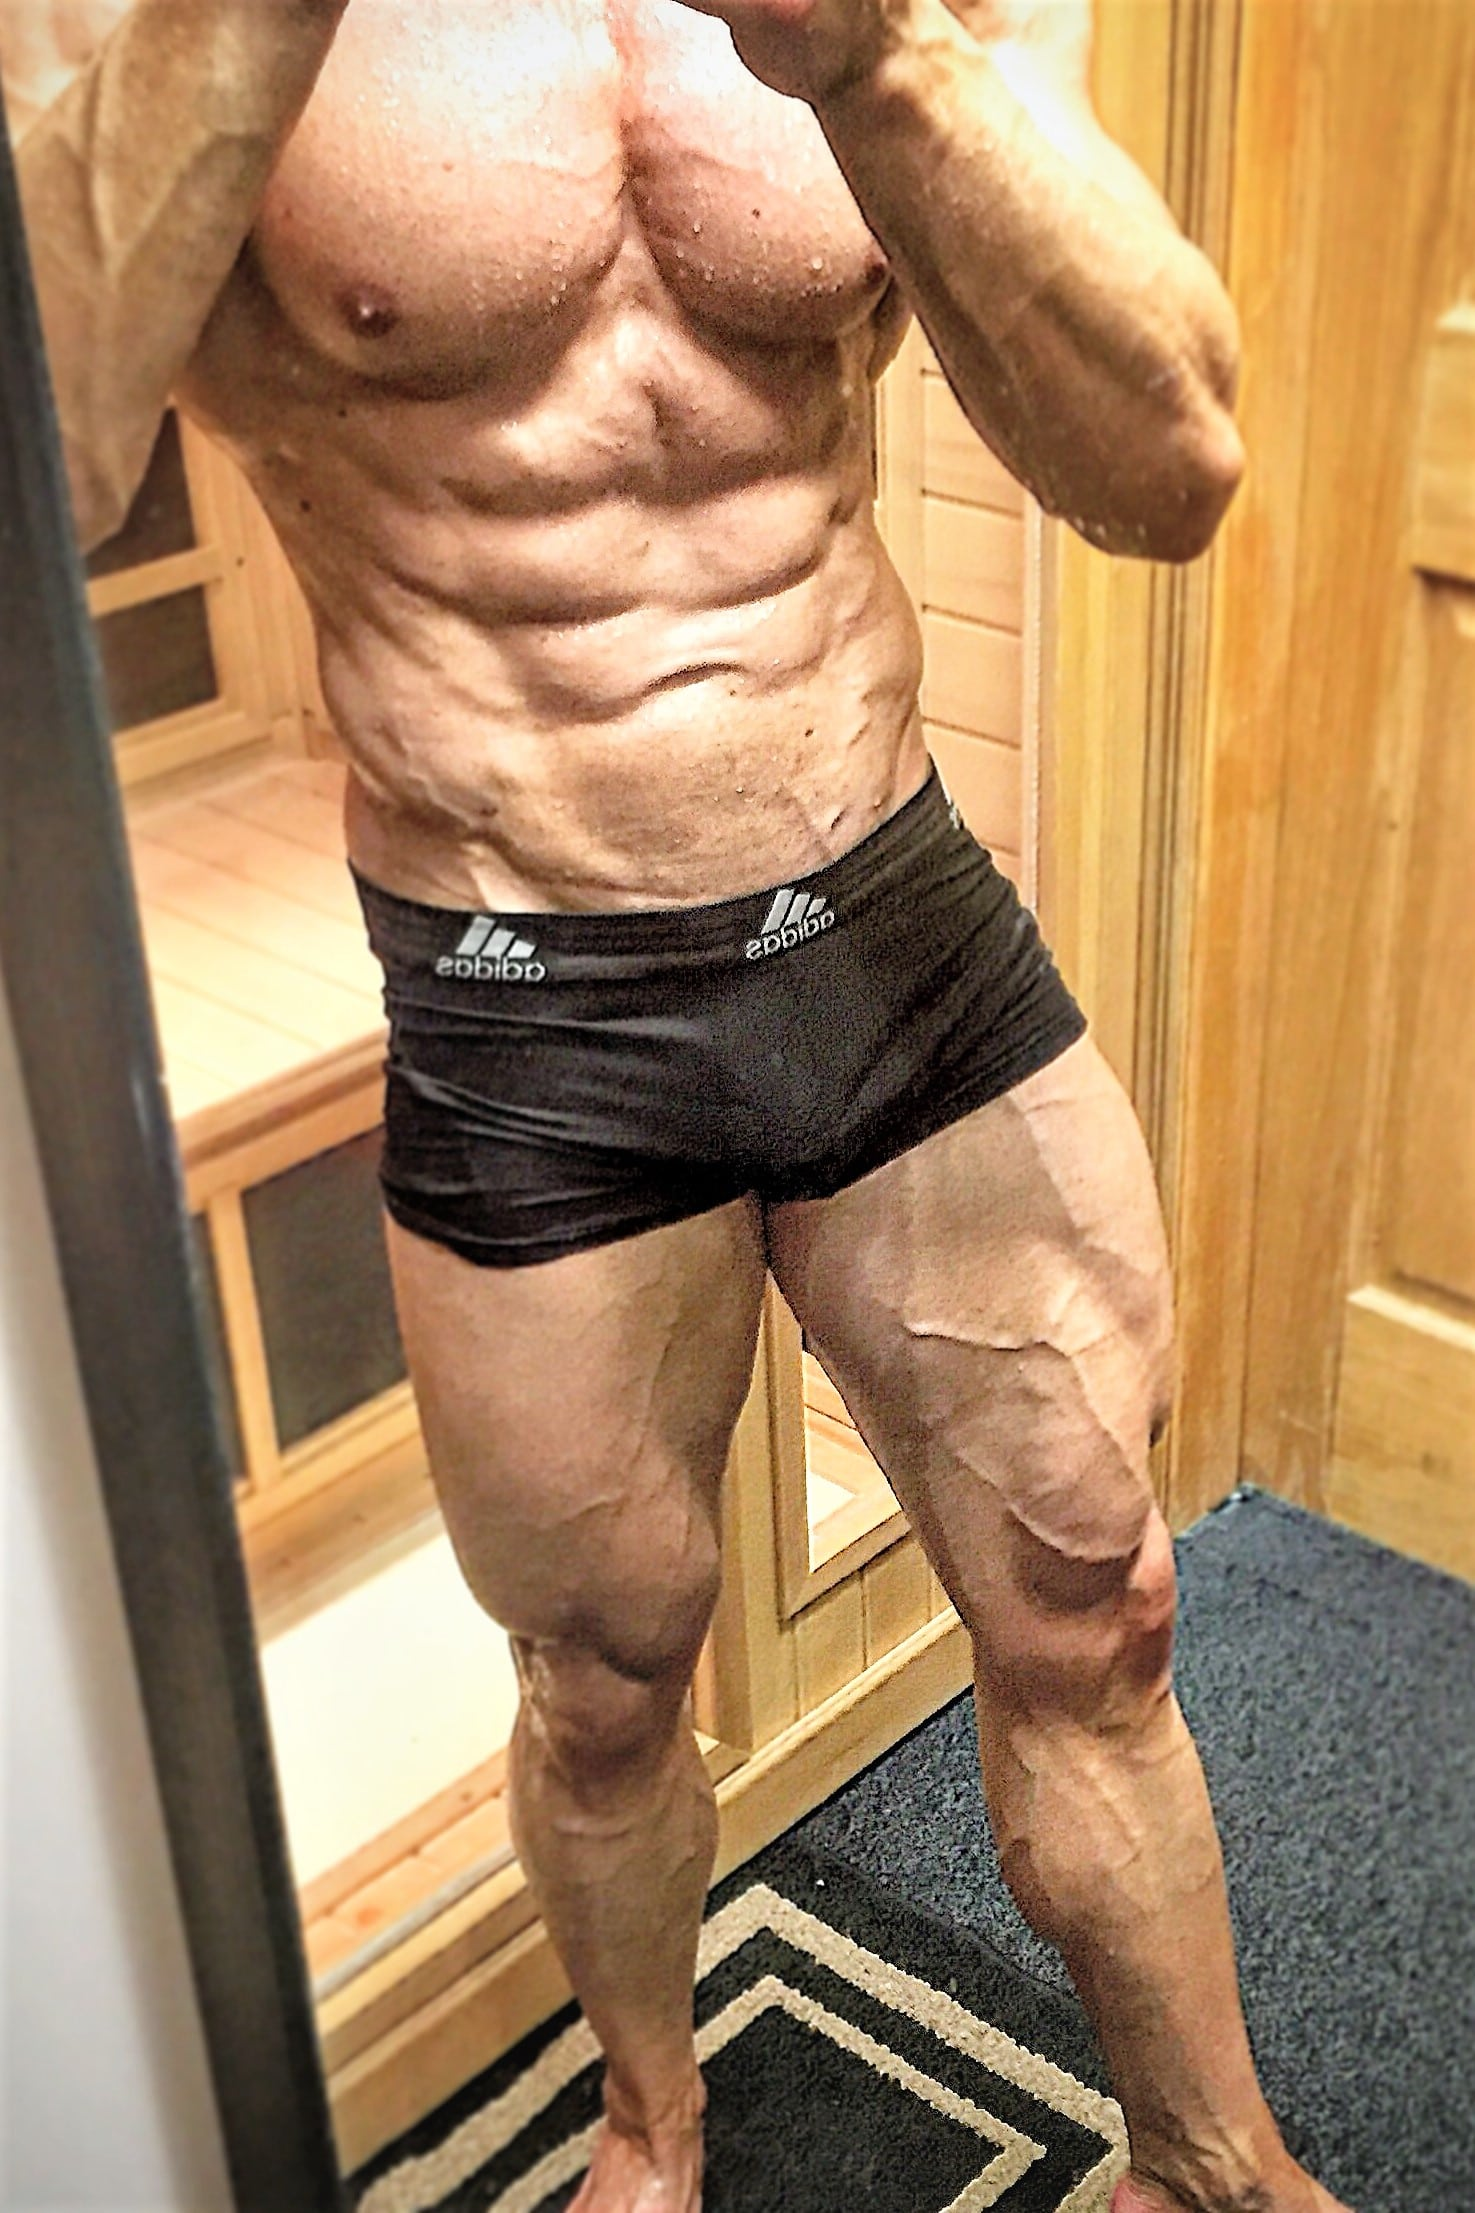 How To Make Your Veins Show 3